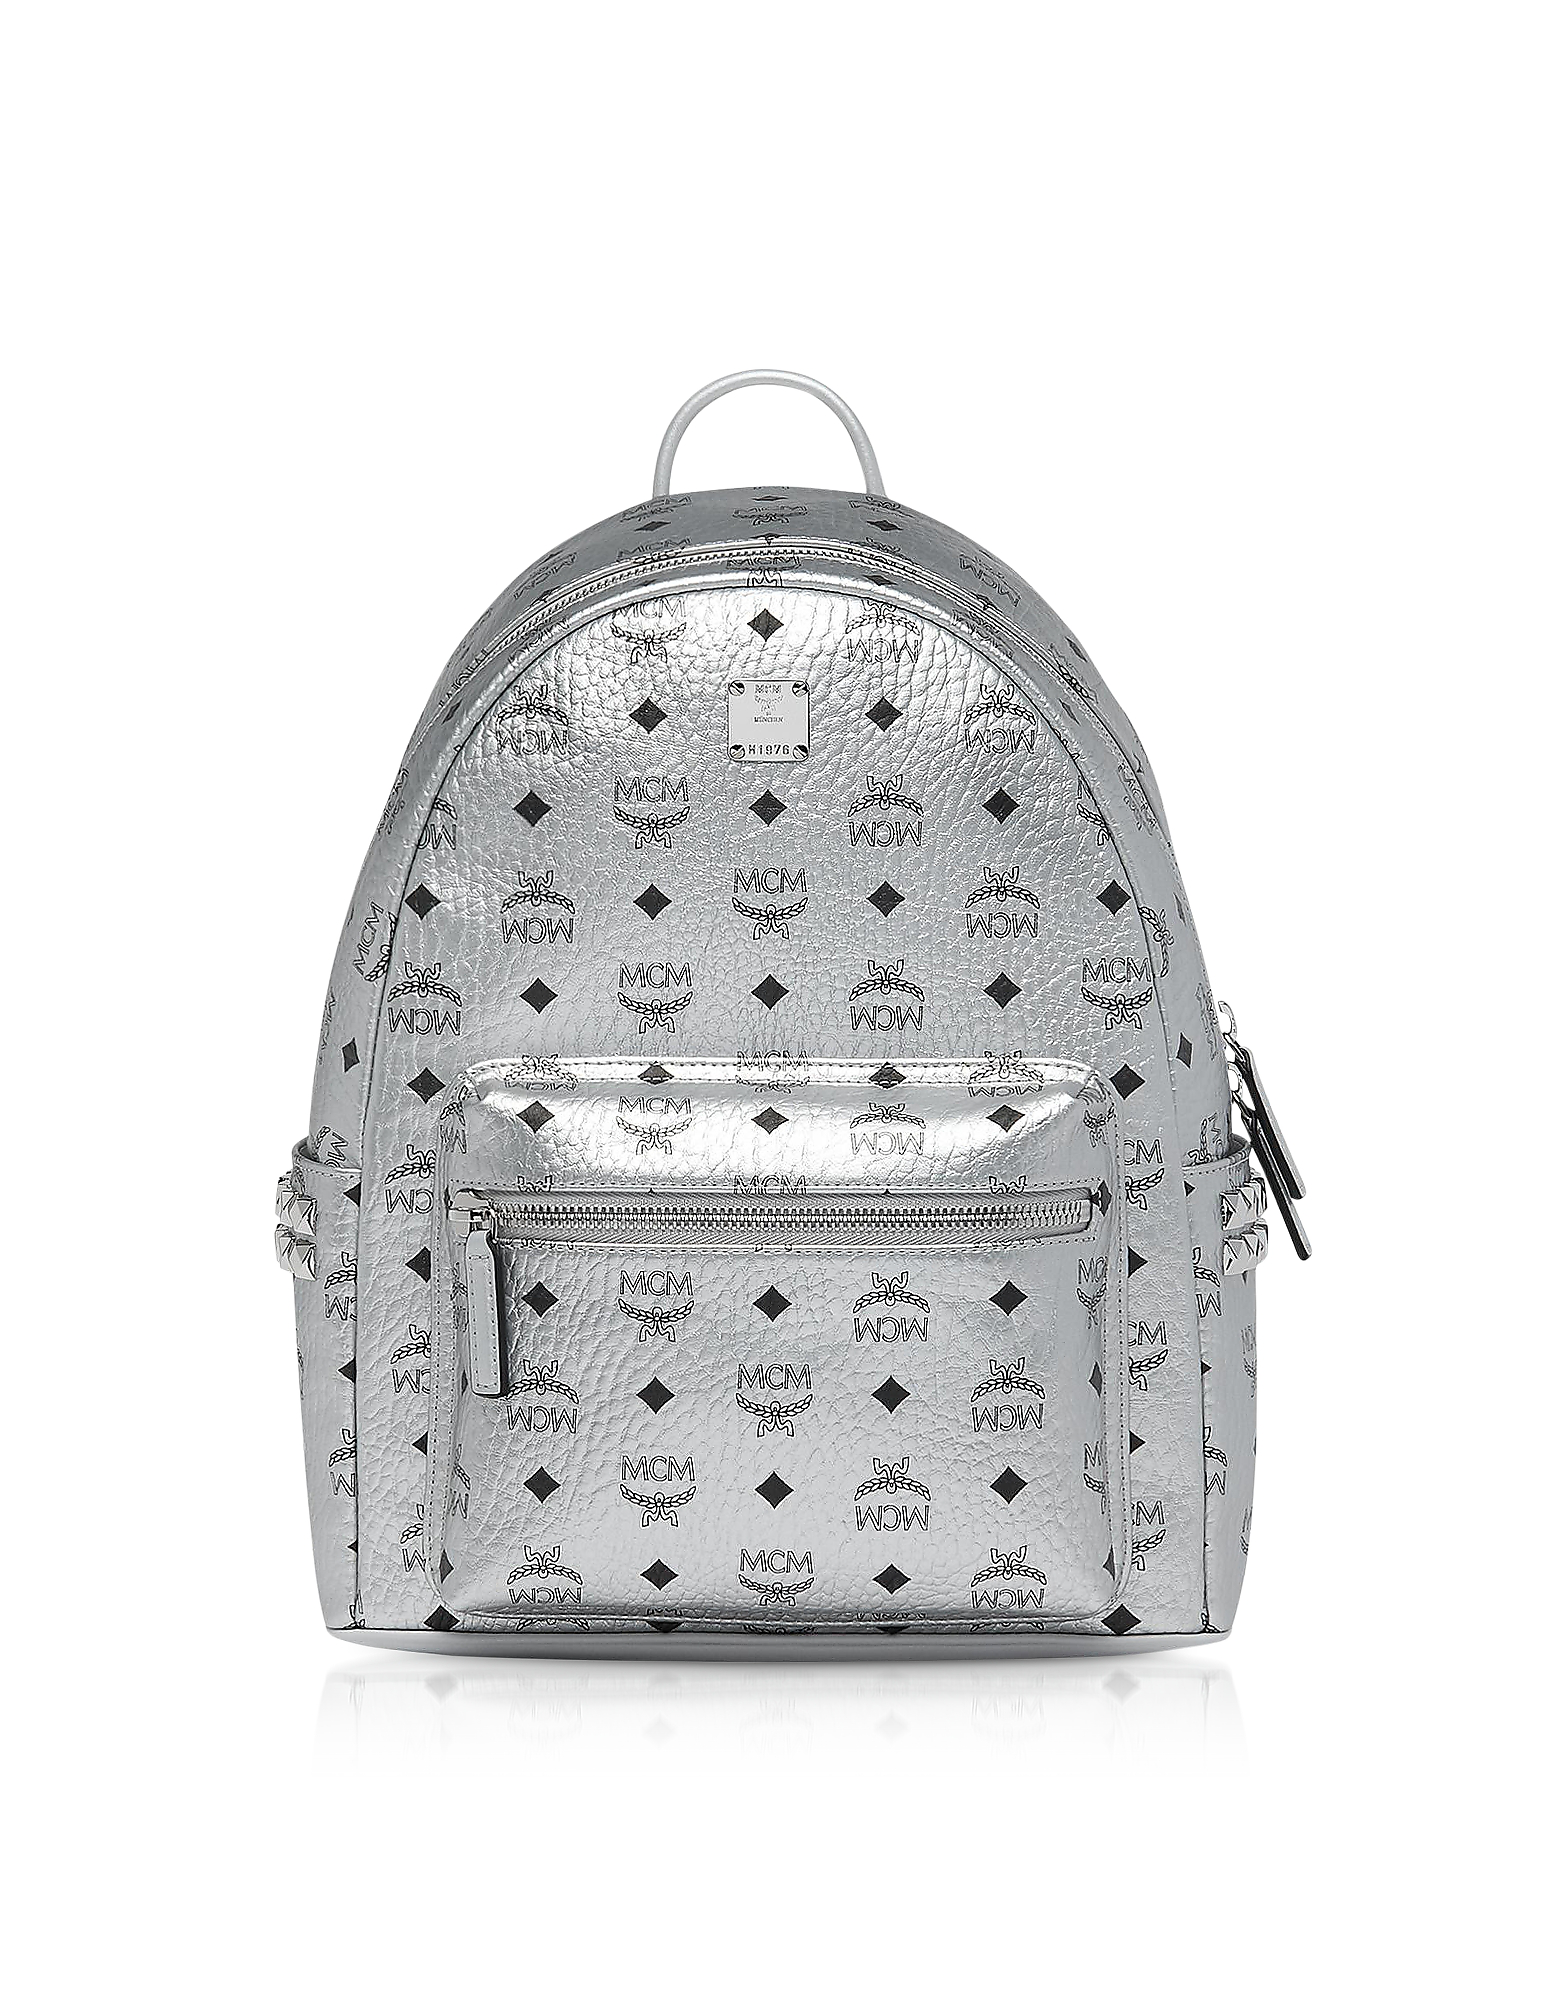 088cc08aaab7 Mcm Small Stark Side Stud Metallic Faux Leather Backpack - Metallic In  Silver